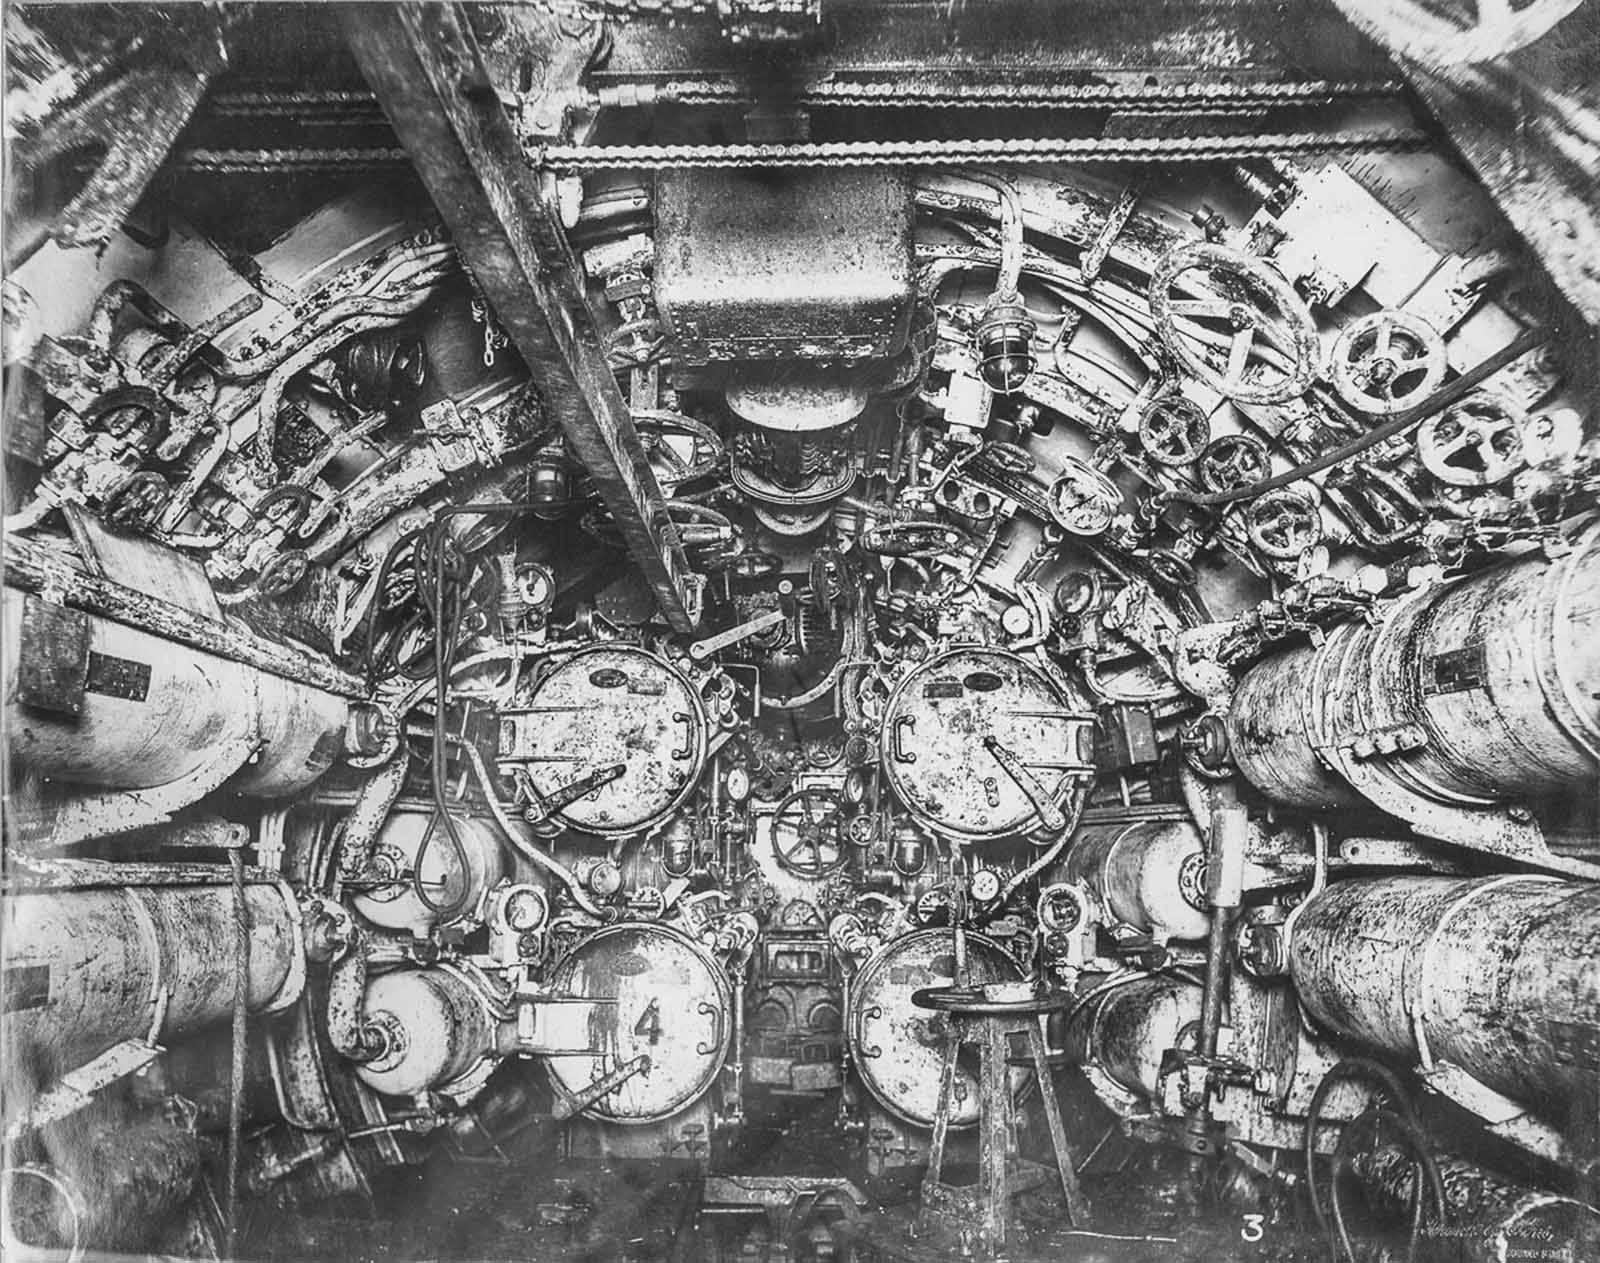 Forward torpedo room.